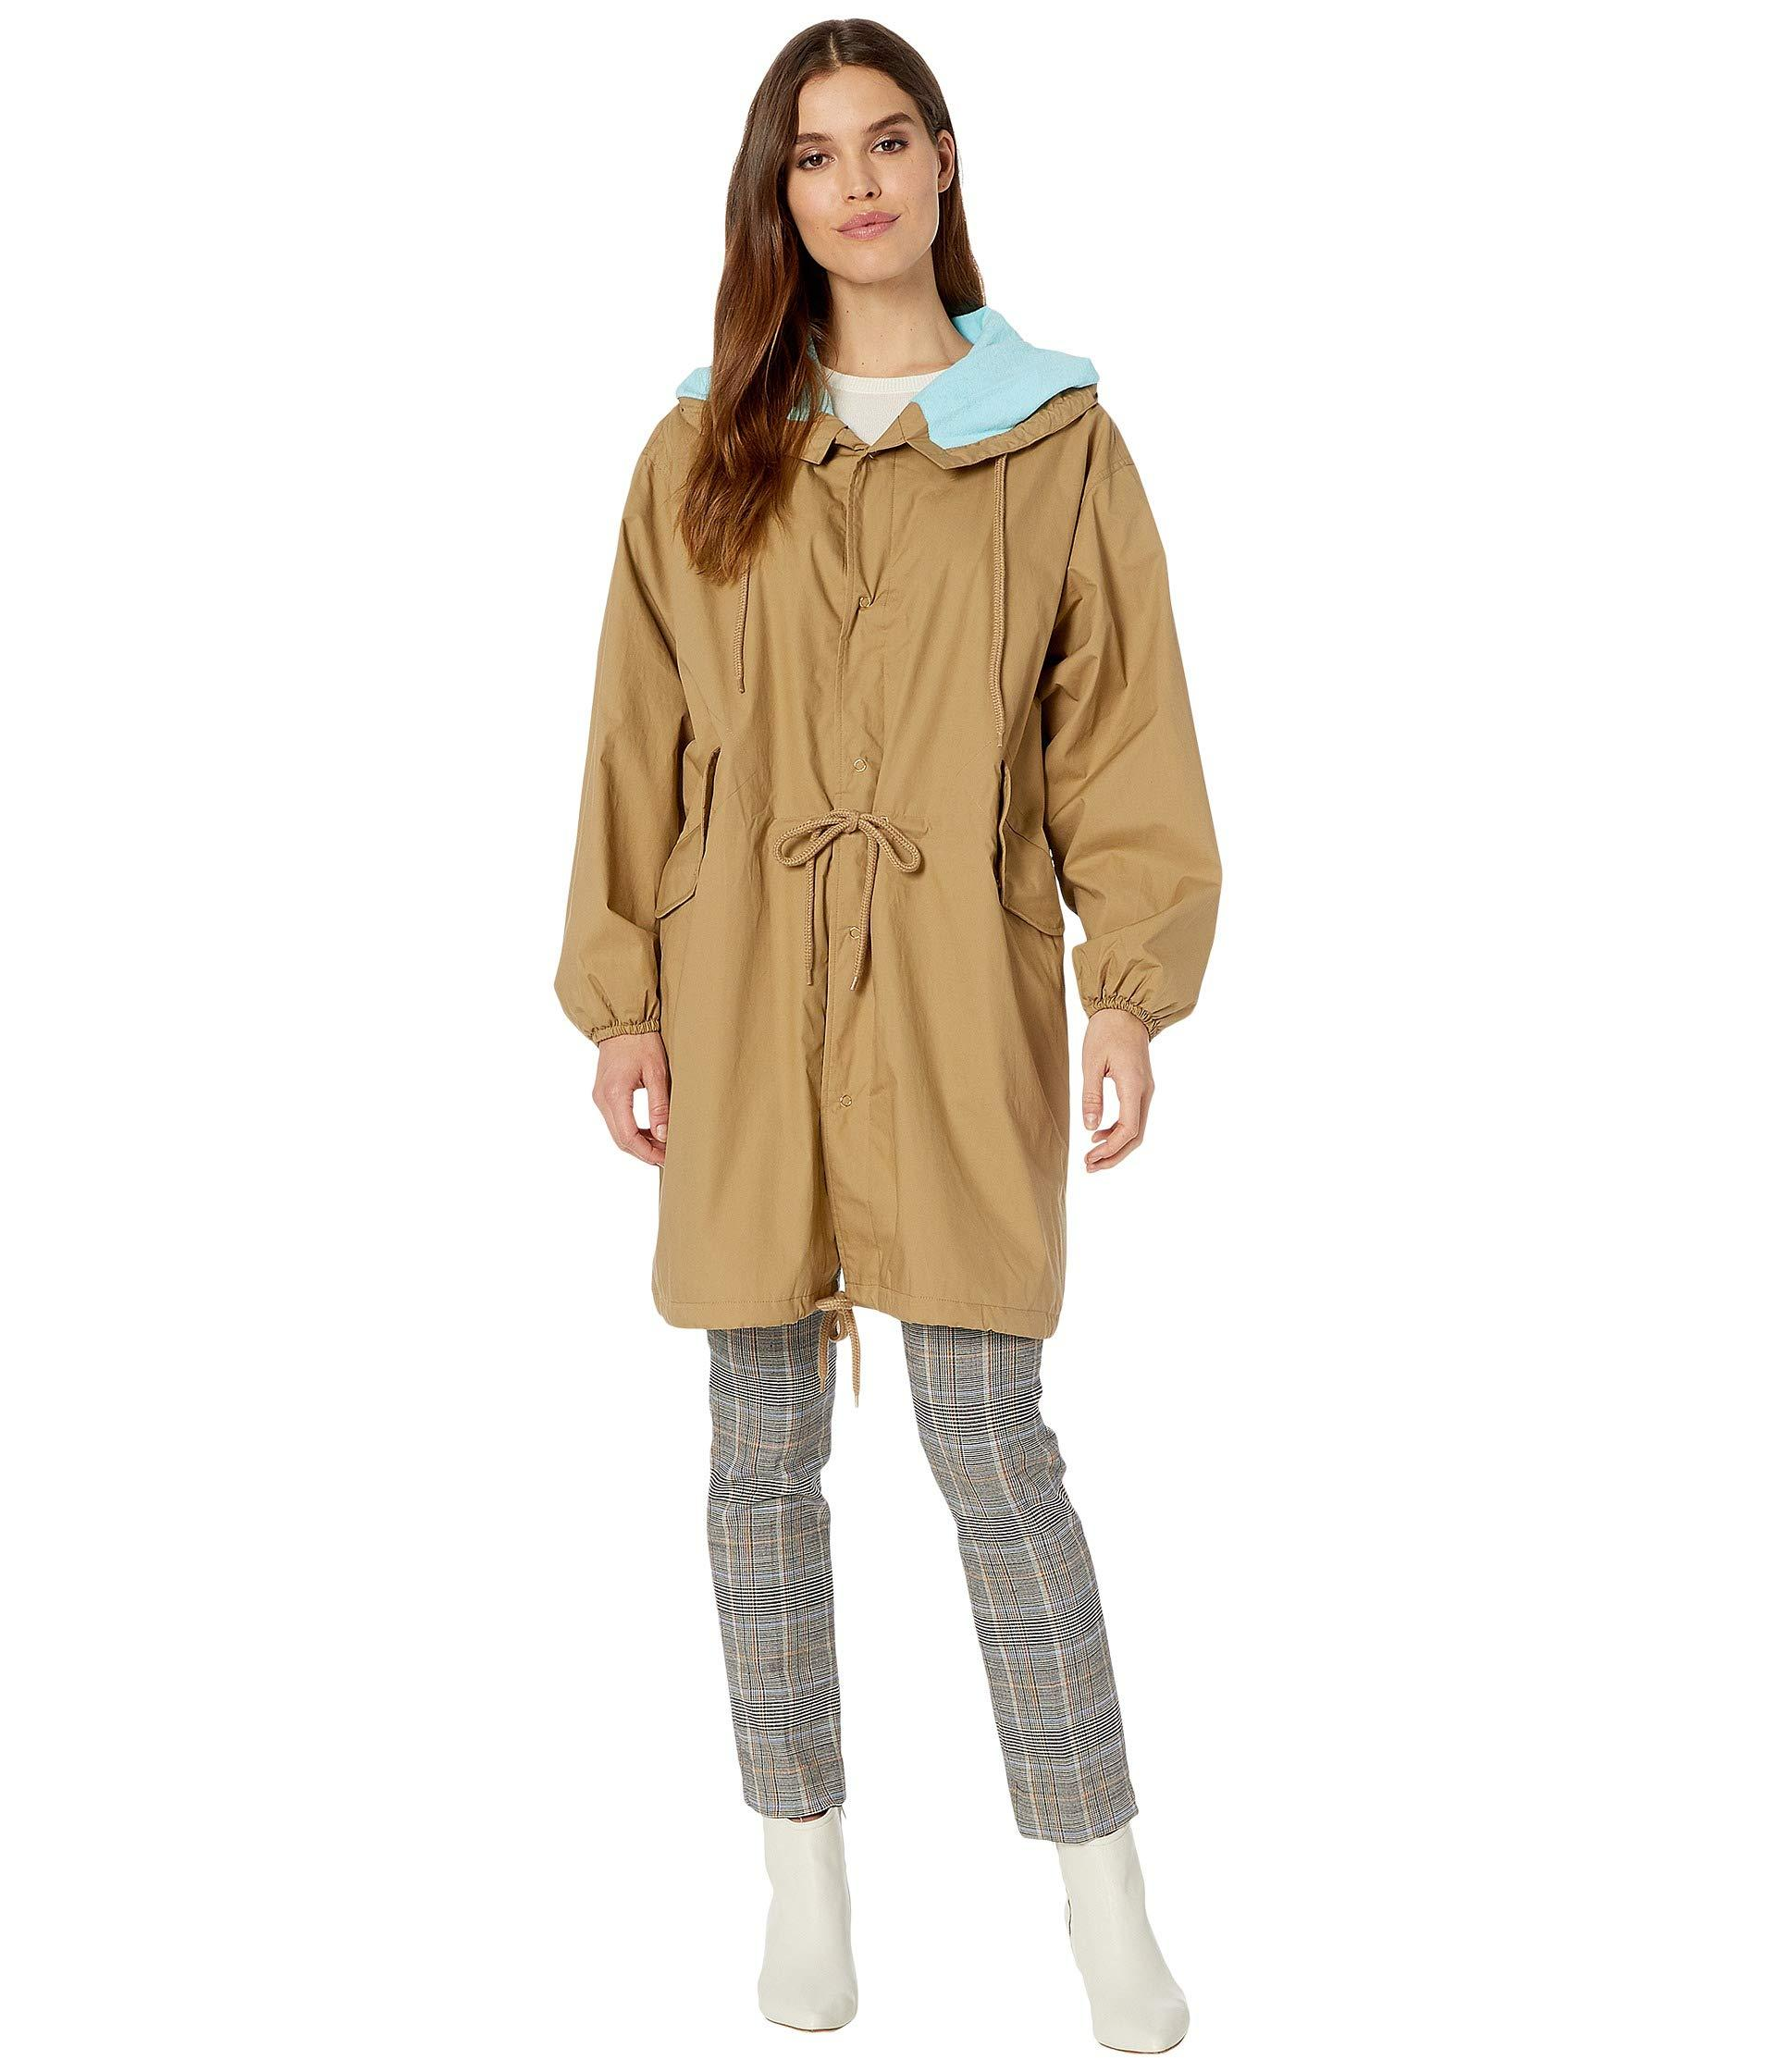 3944ed3e8e07 Lyst - Juicy Couture Parachute Microterry Lined Parka in Natural